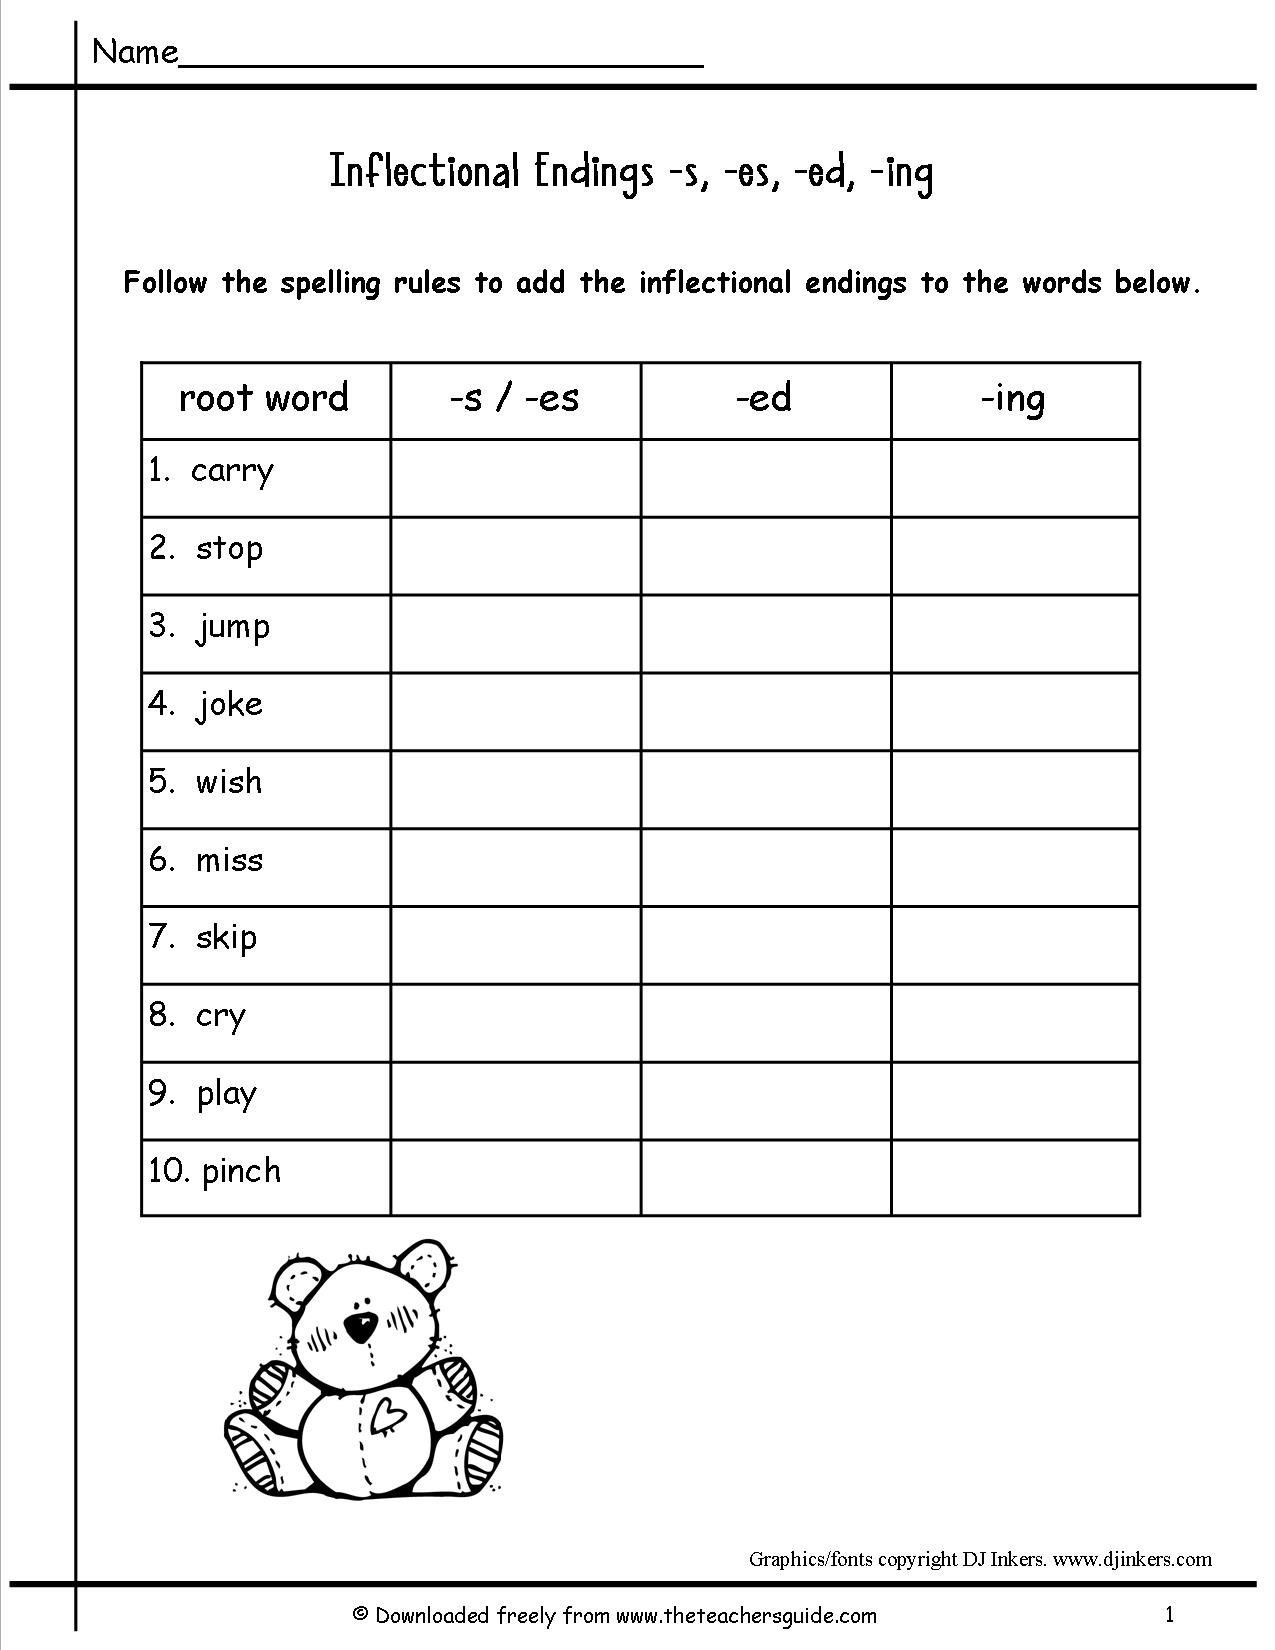 Inflectional Endings Snowman Worksheety   Printable Worksheets and  Activities for Teachers [ 1650 x 1275 Pixel ]